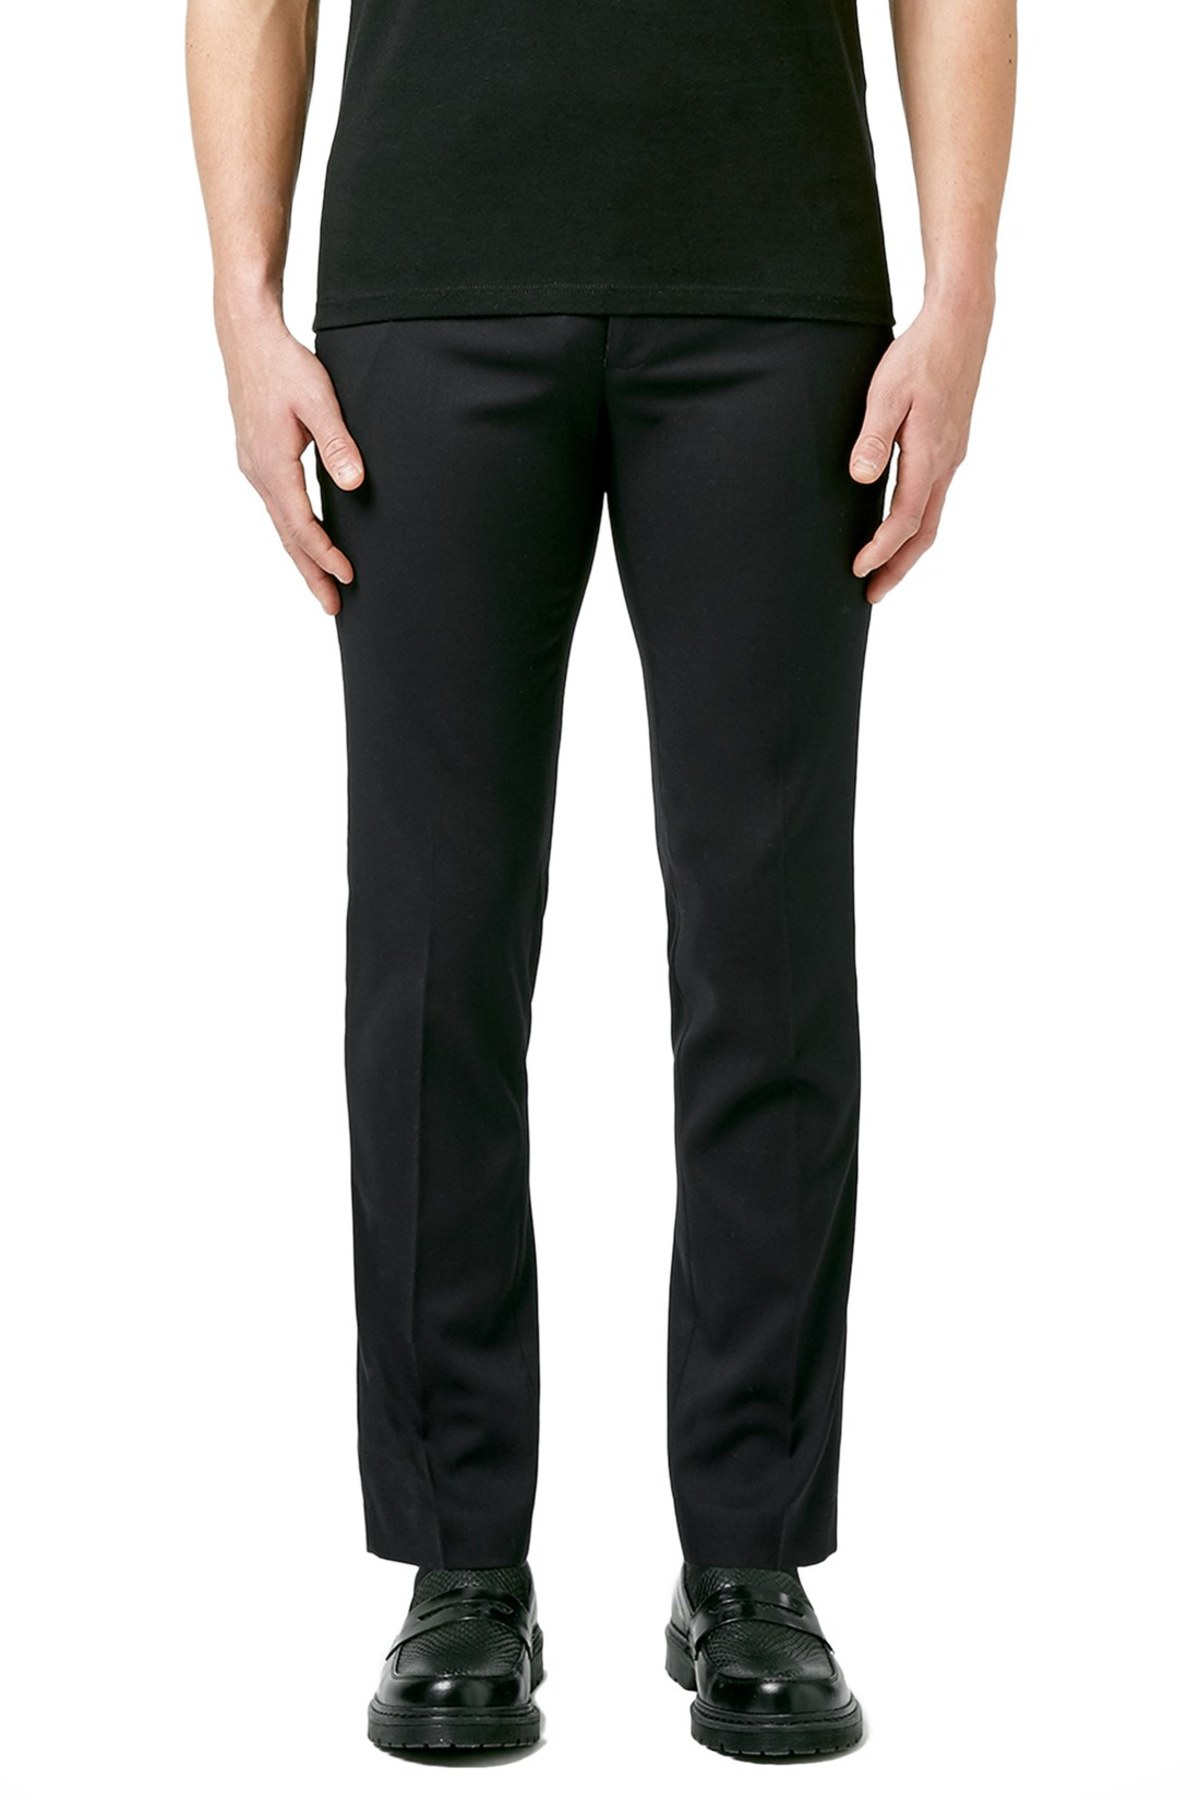 The Gallery For --u0026gt; Formal Pants For Men Narrow Fit